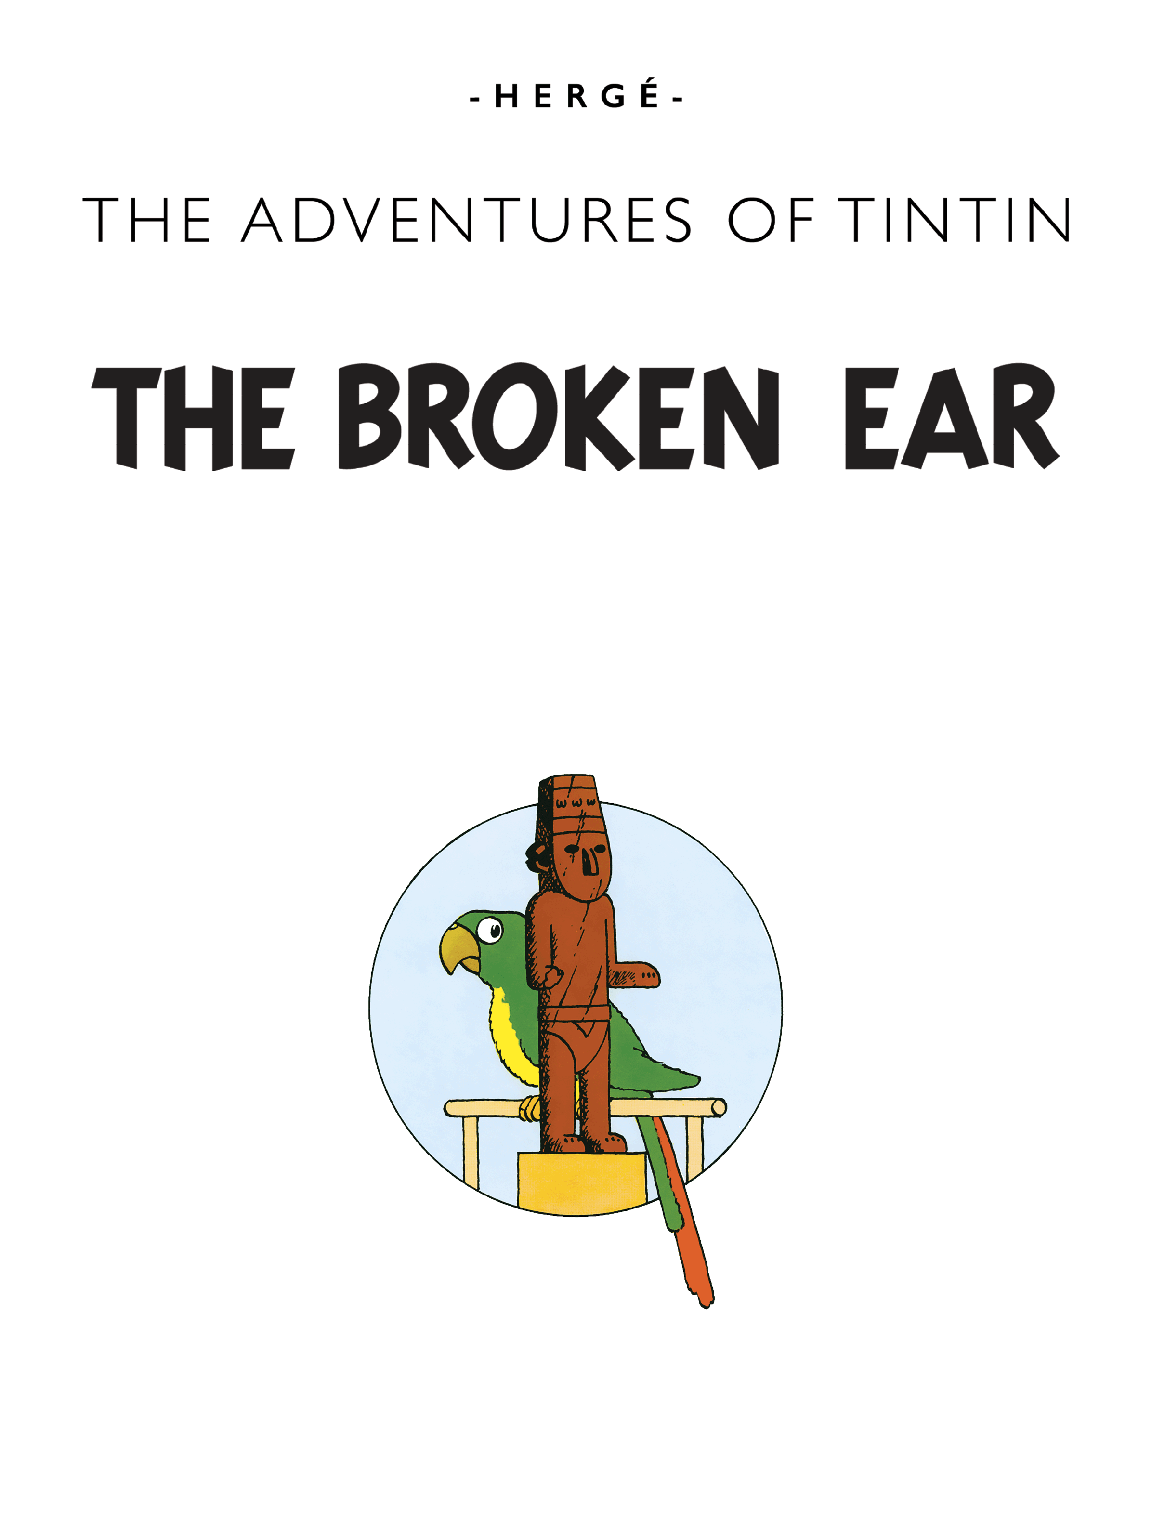 The Broken Ear - Title page